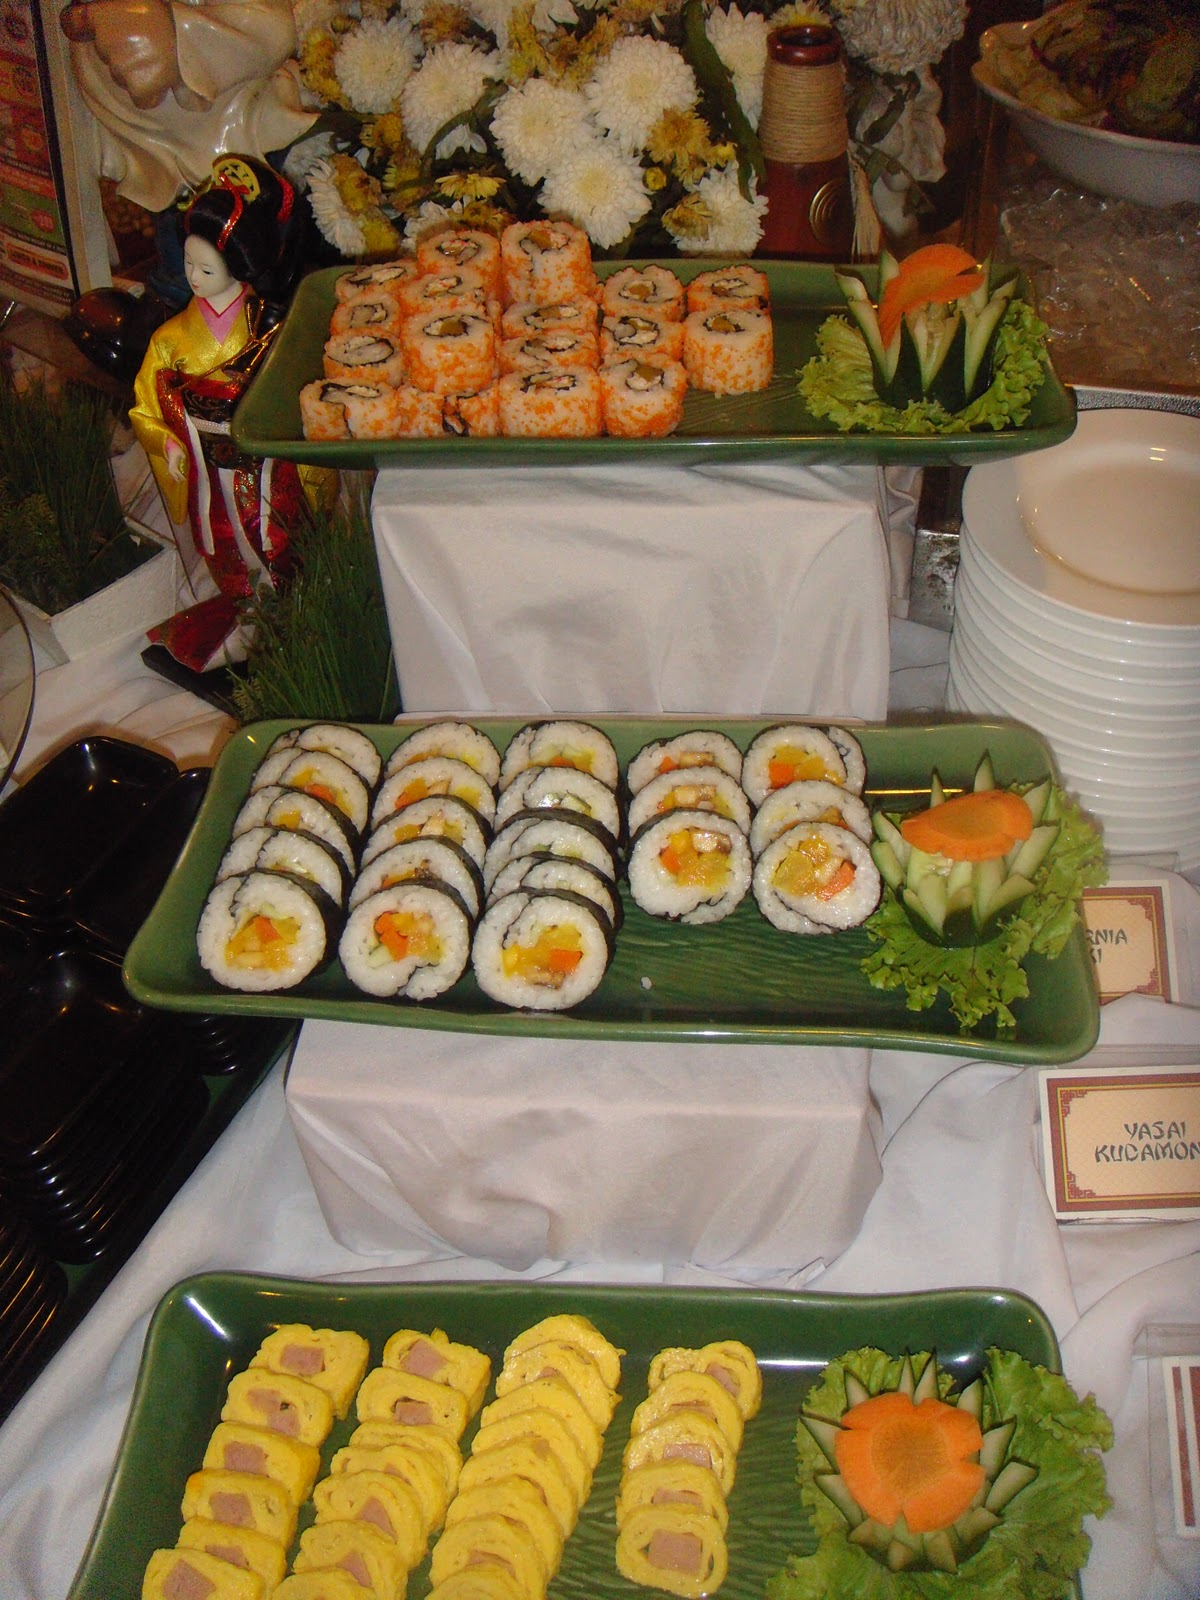 TIPS ON BUFFET DINING